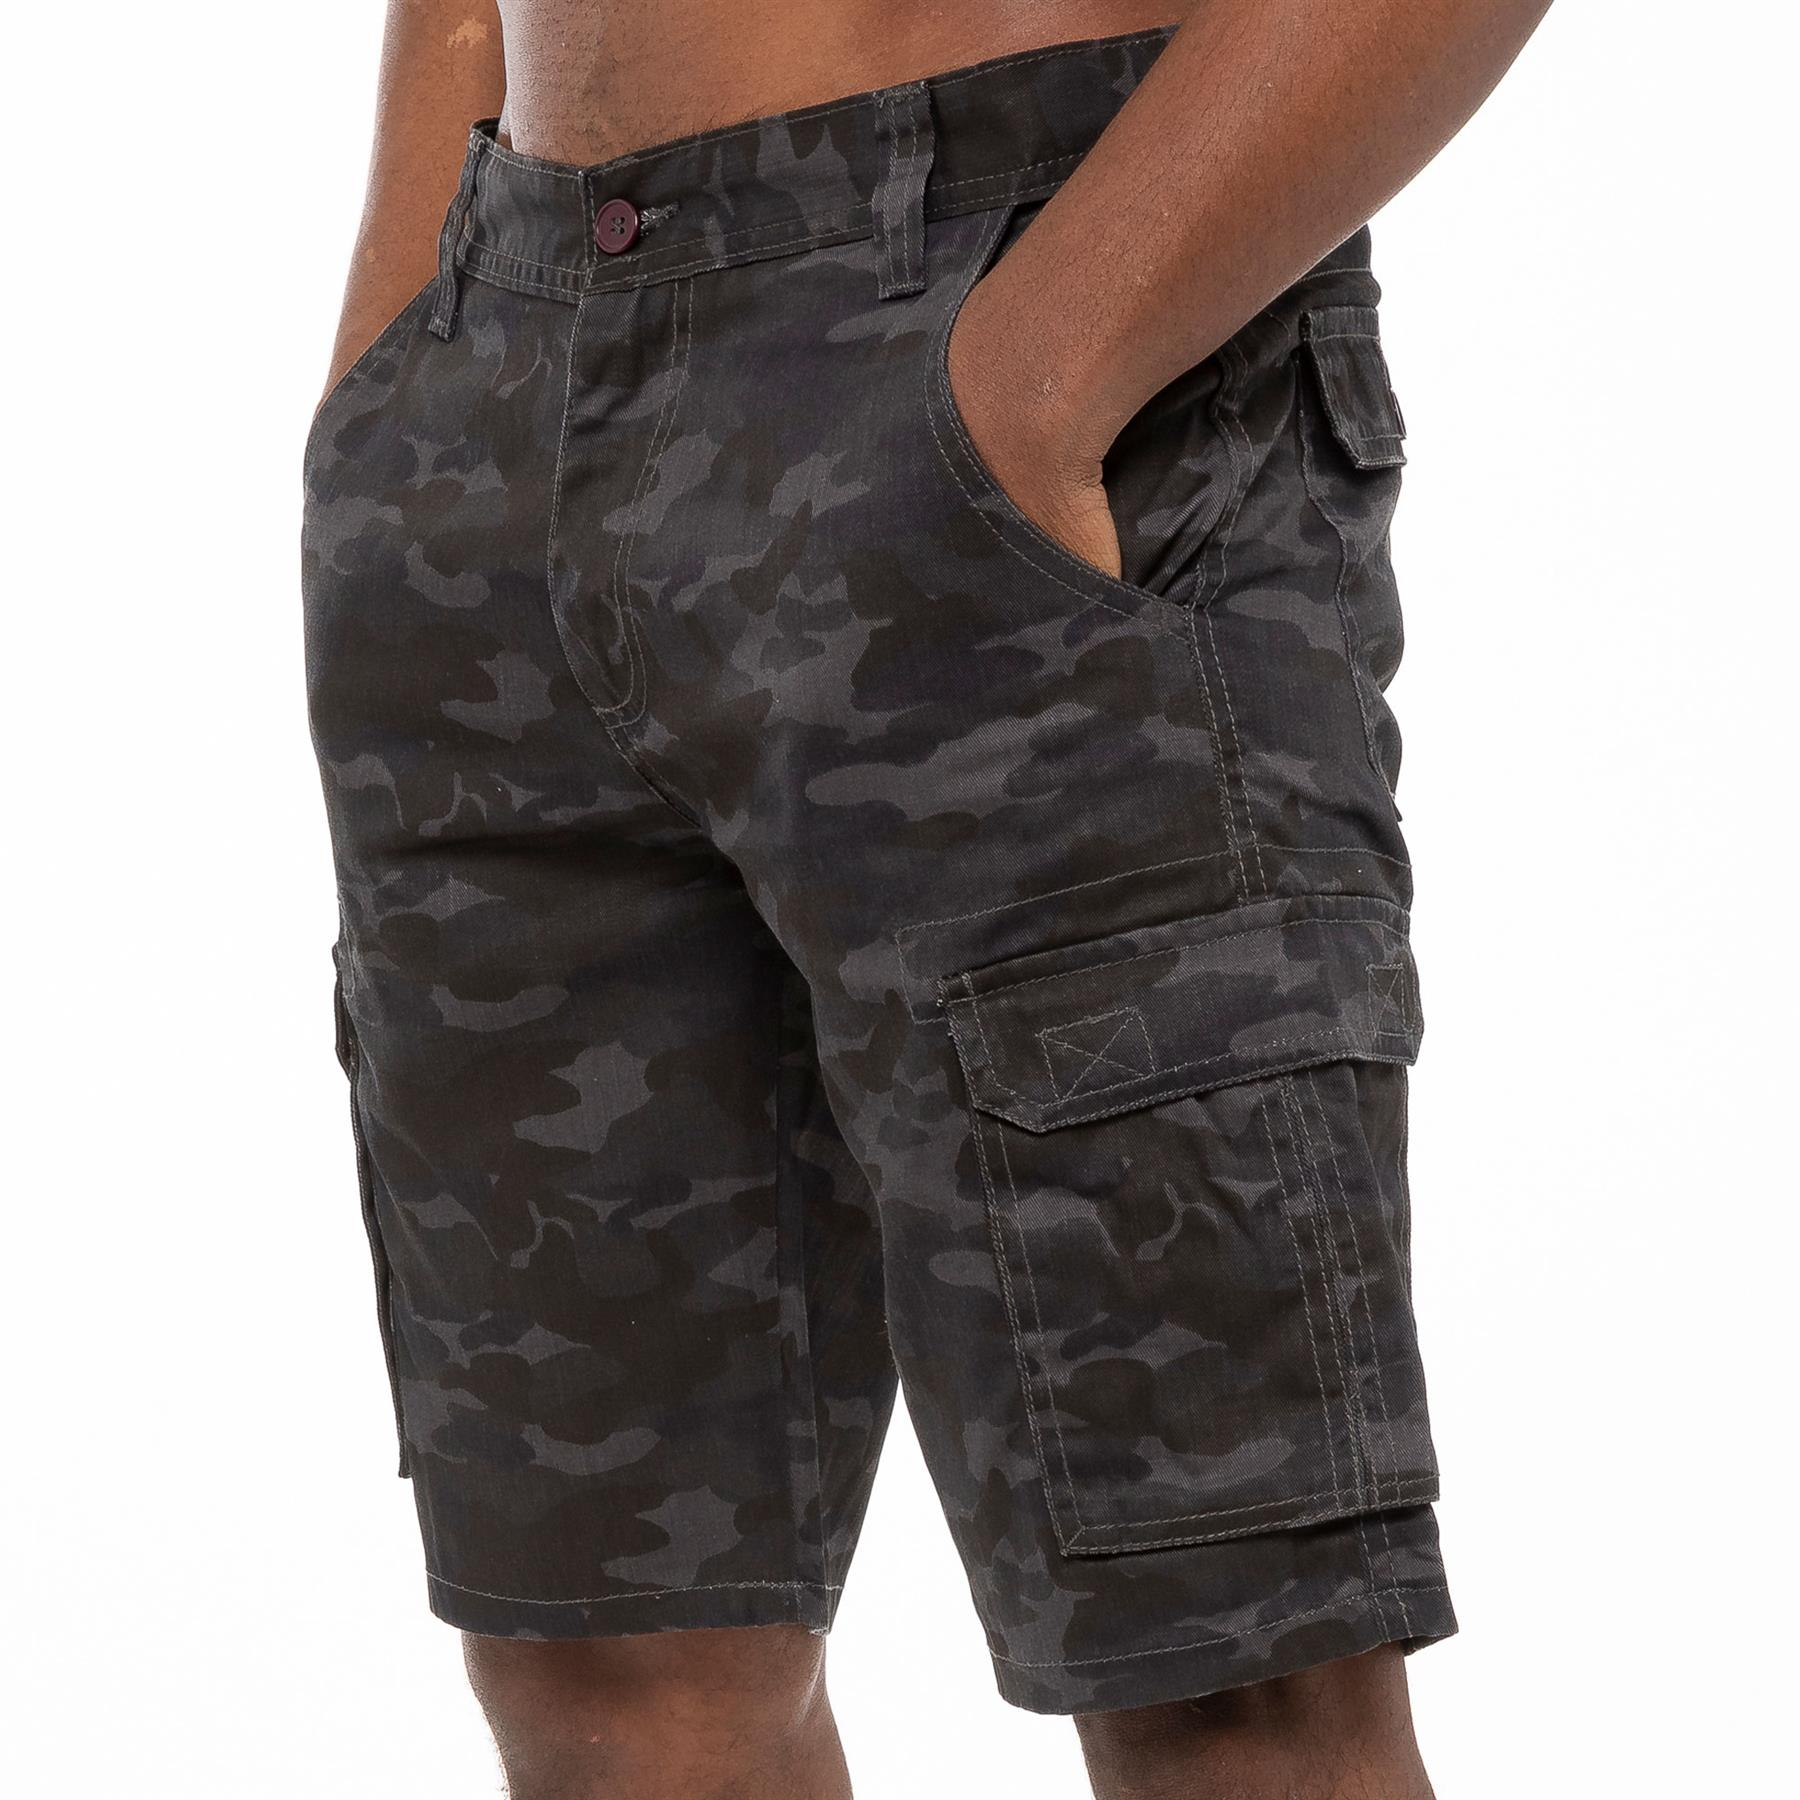 thumbnail 20 - Kruze Jeans Mens Army Combat Shorts Camouflage Cargo Casual Camo Work Half Pants